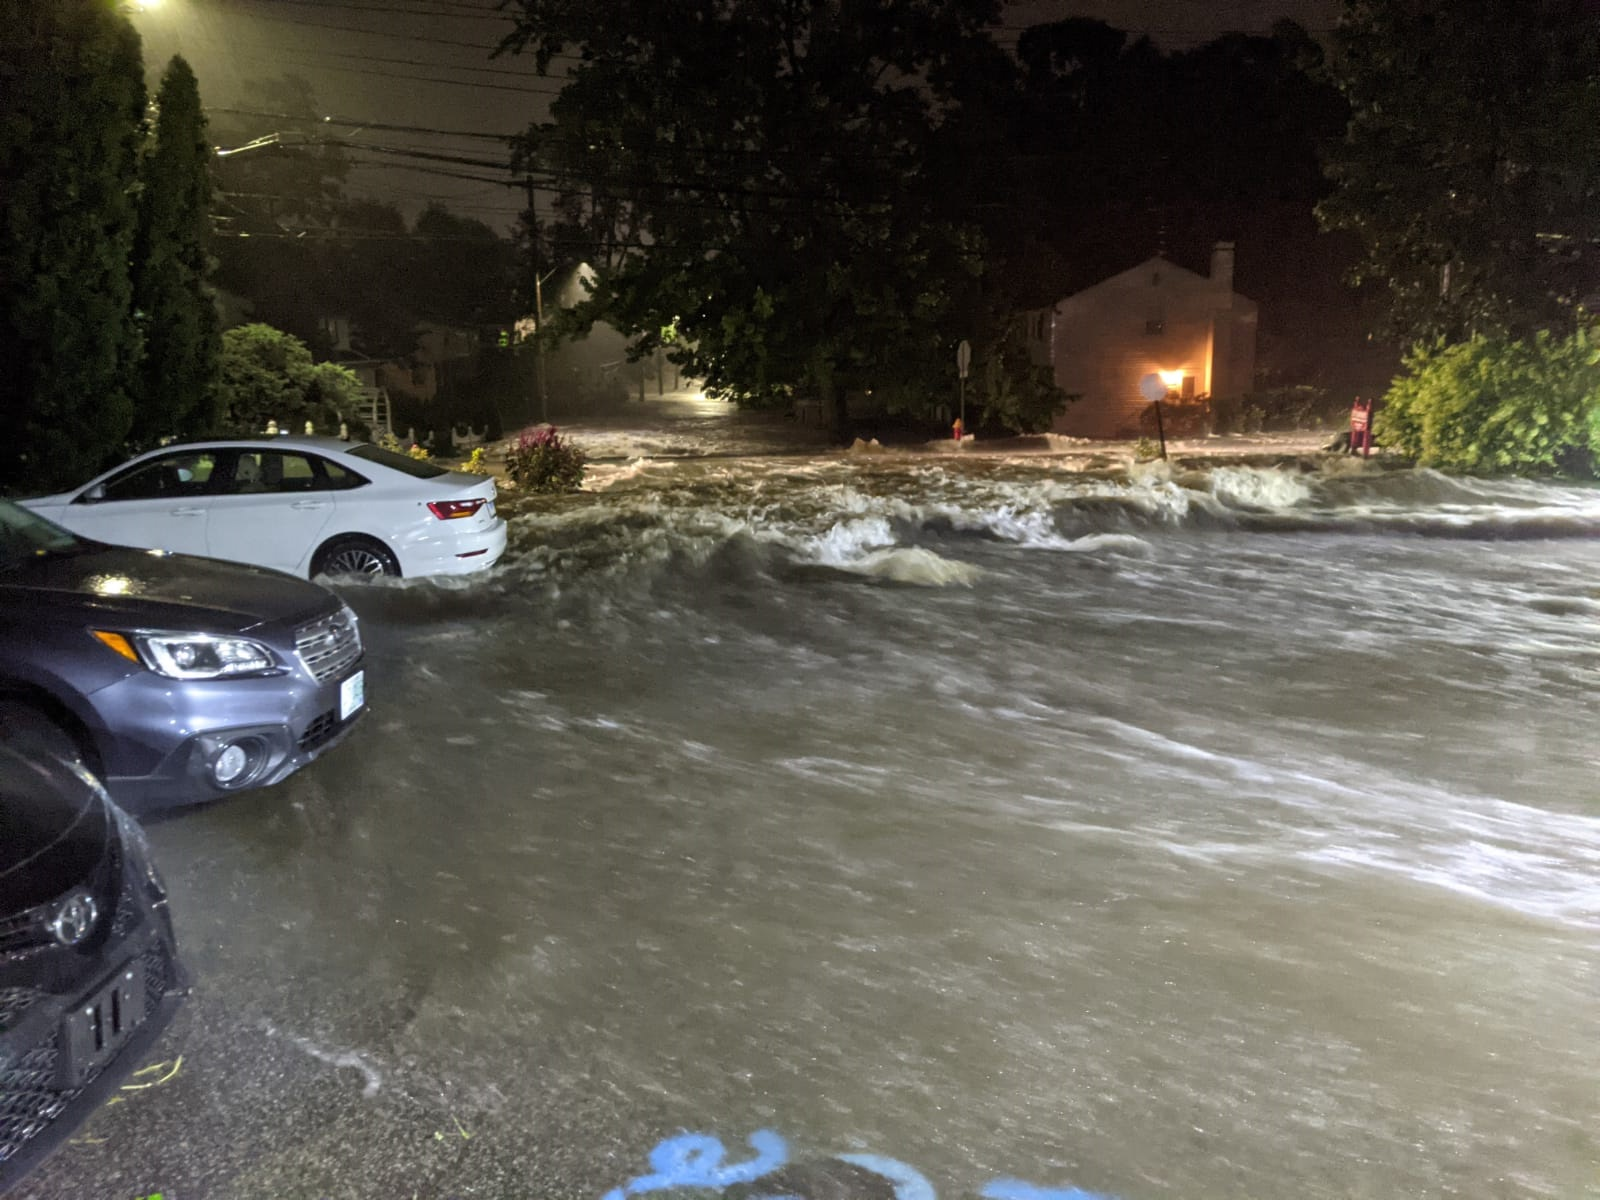 flood waters and vehicles